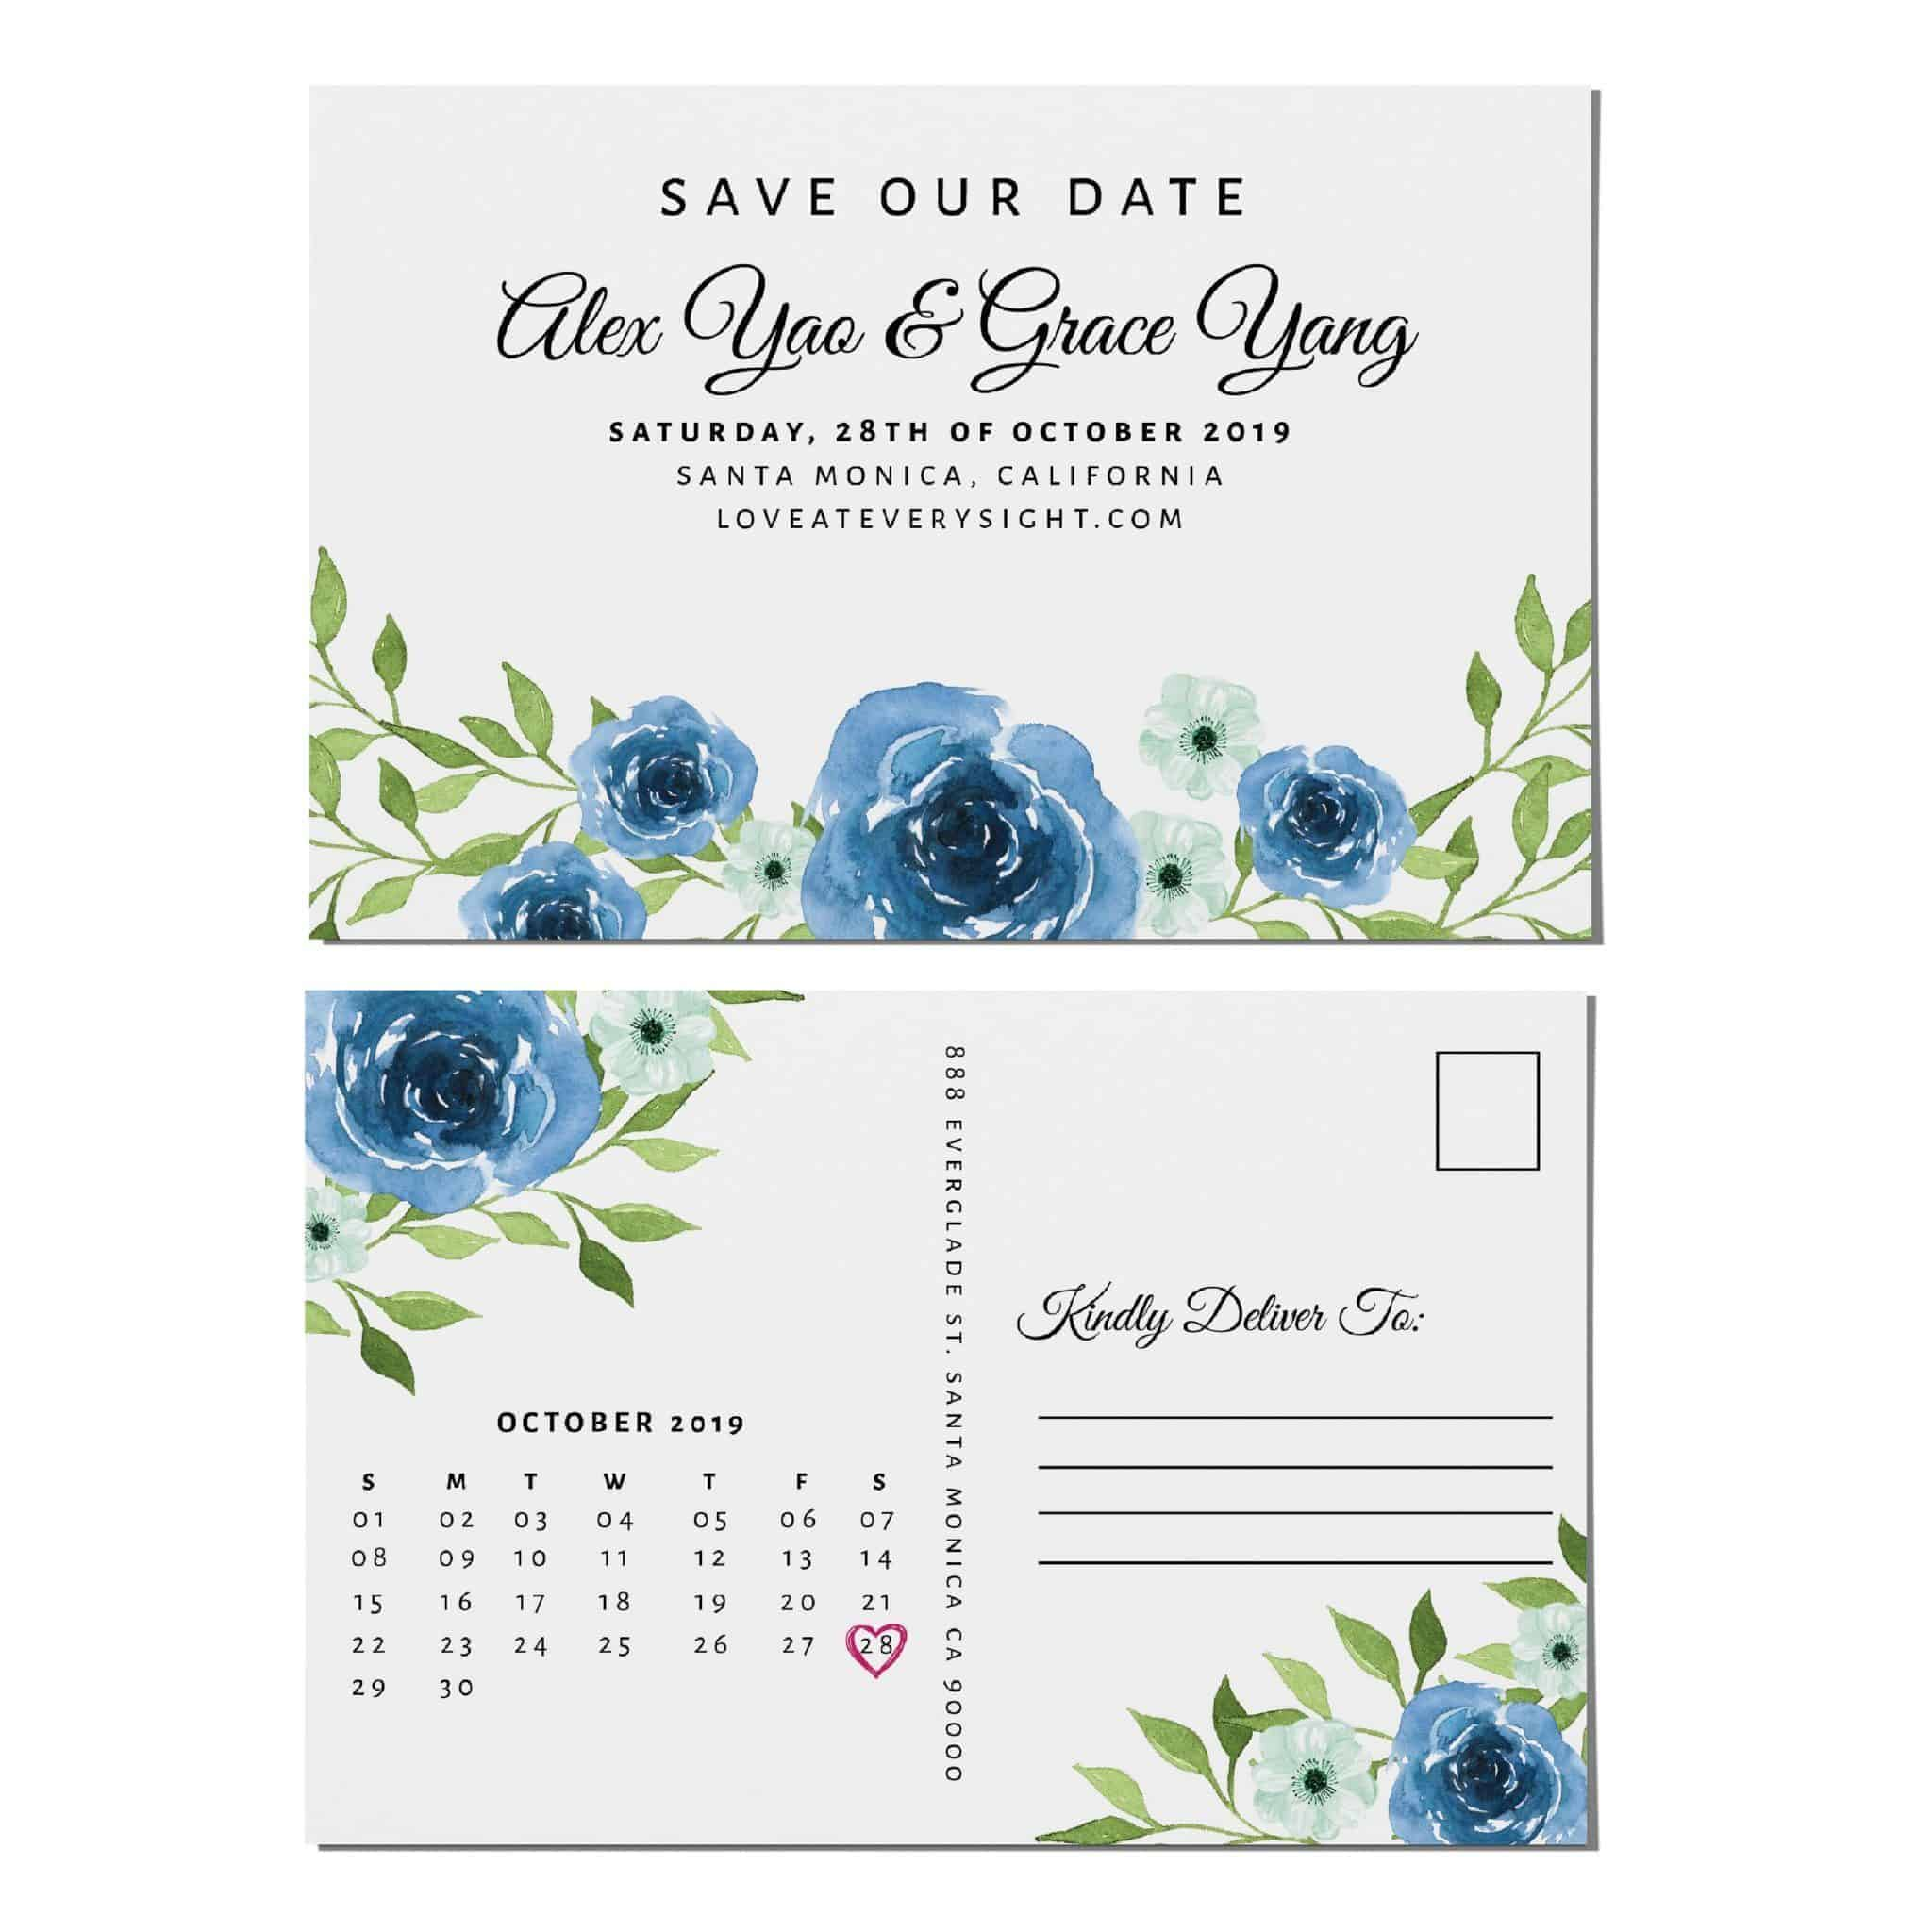 Wedding Calendar Announcement Postcards, Wedding Save the Date Postcards, Save the Date Announcement for Relatives Save the Date Cards